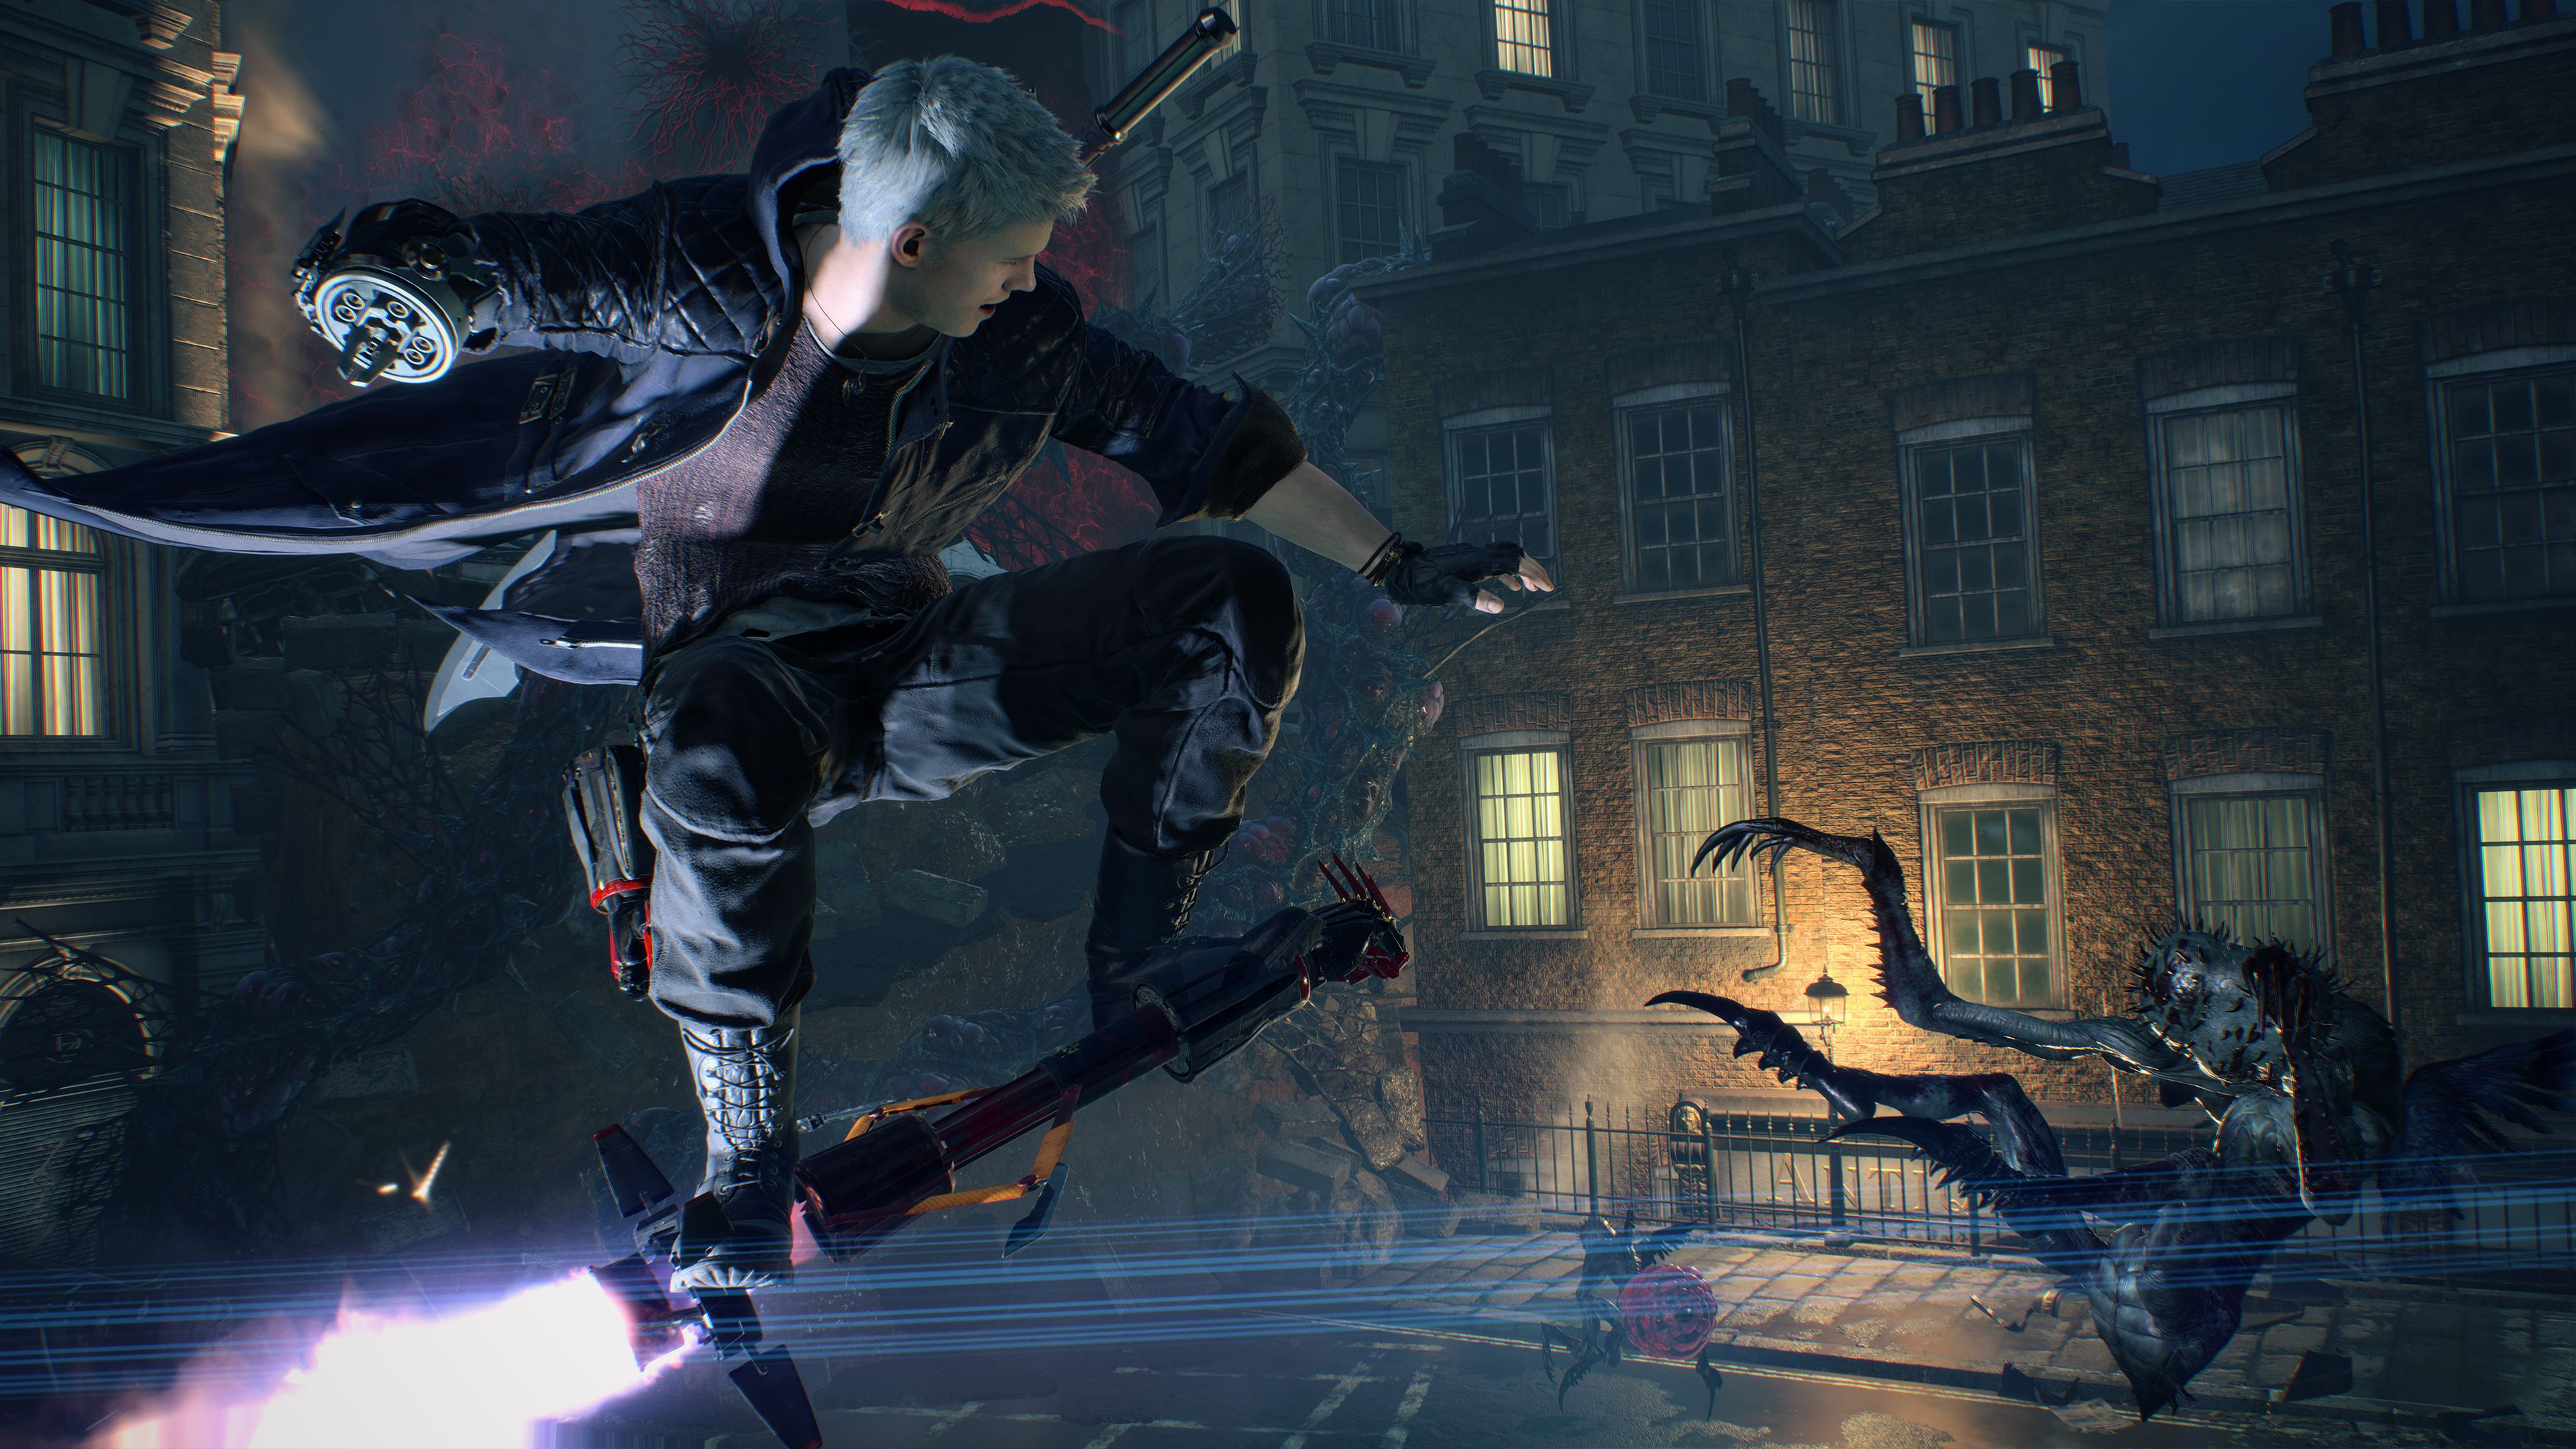 The success ofResident Evil 2, Monster Hunter: World and Mega Man 11 influenced Devil May Cry 5